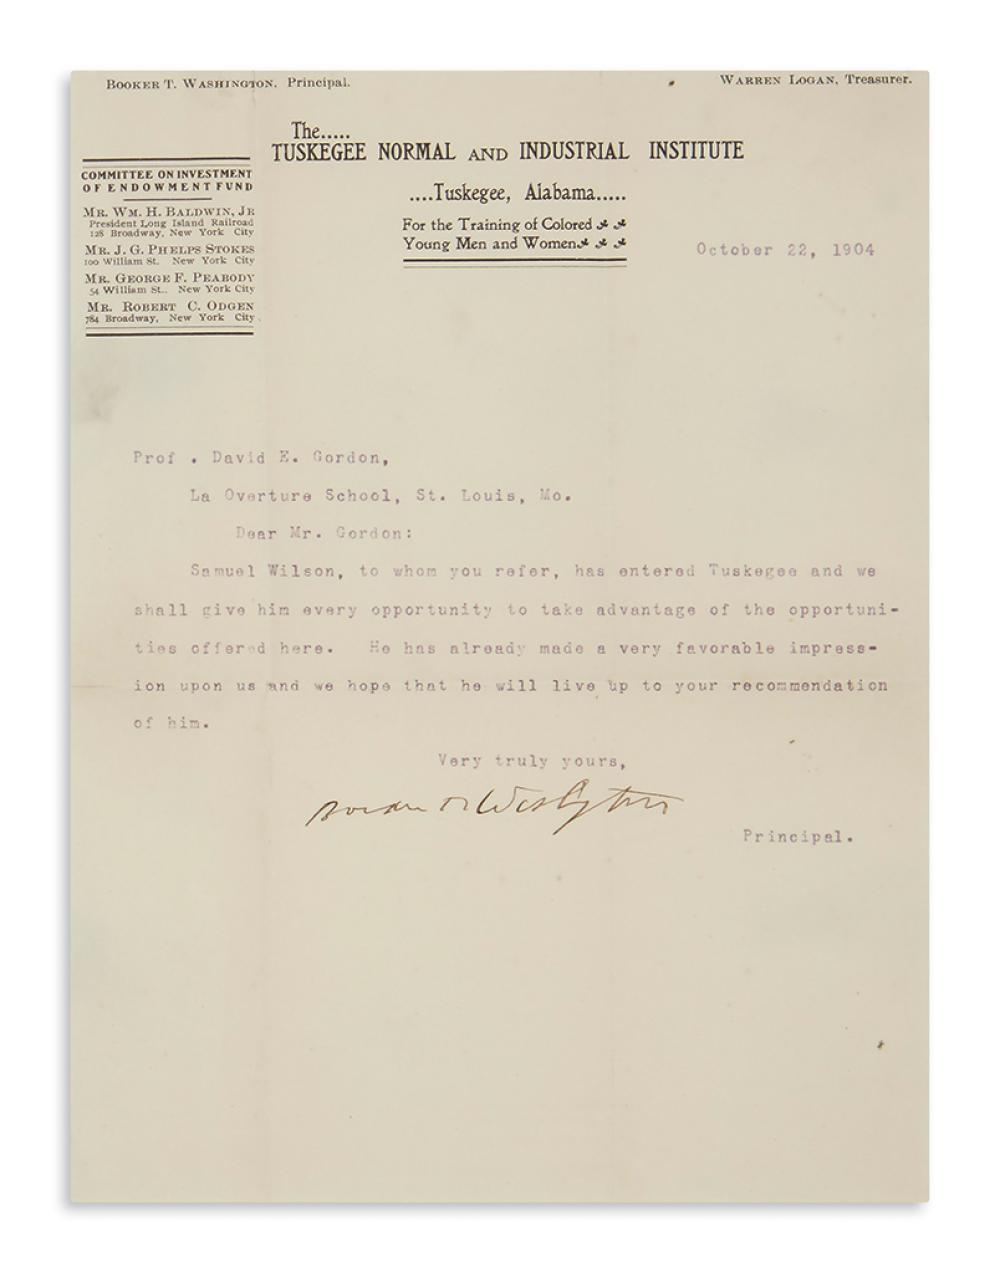 (EDUCATION.) Washington, Booker T. Letter to a fellow educator regarding a new student at the Tuskegee Institute.